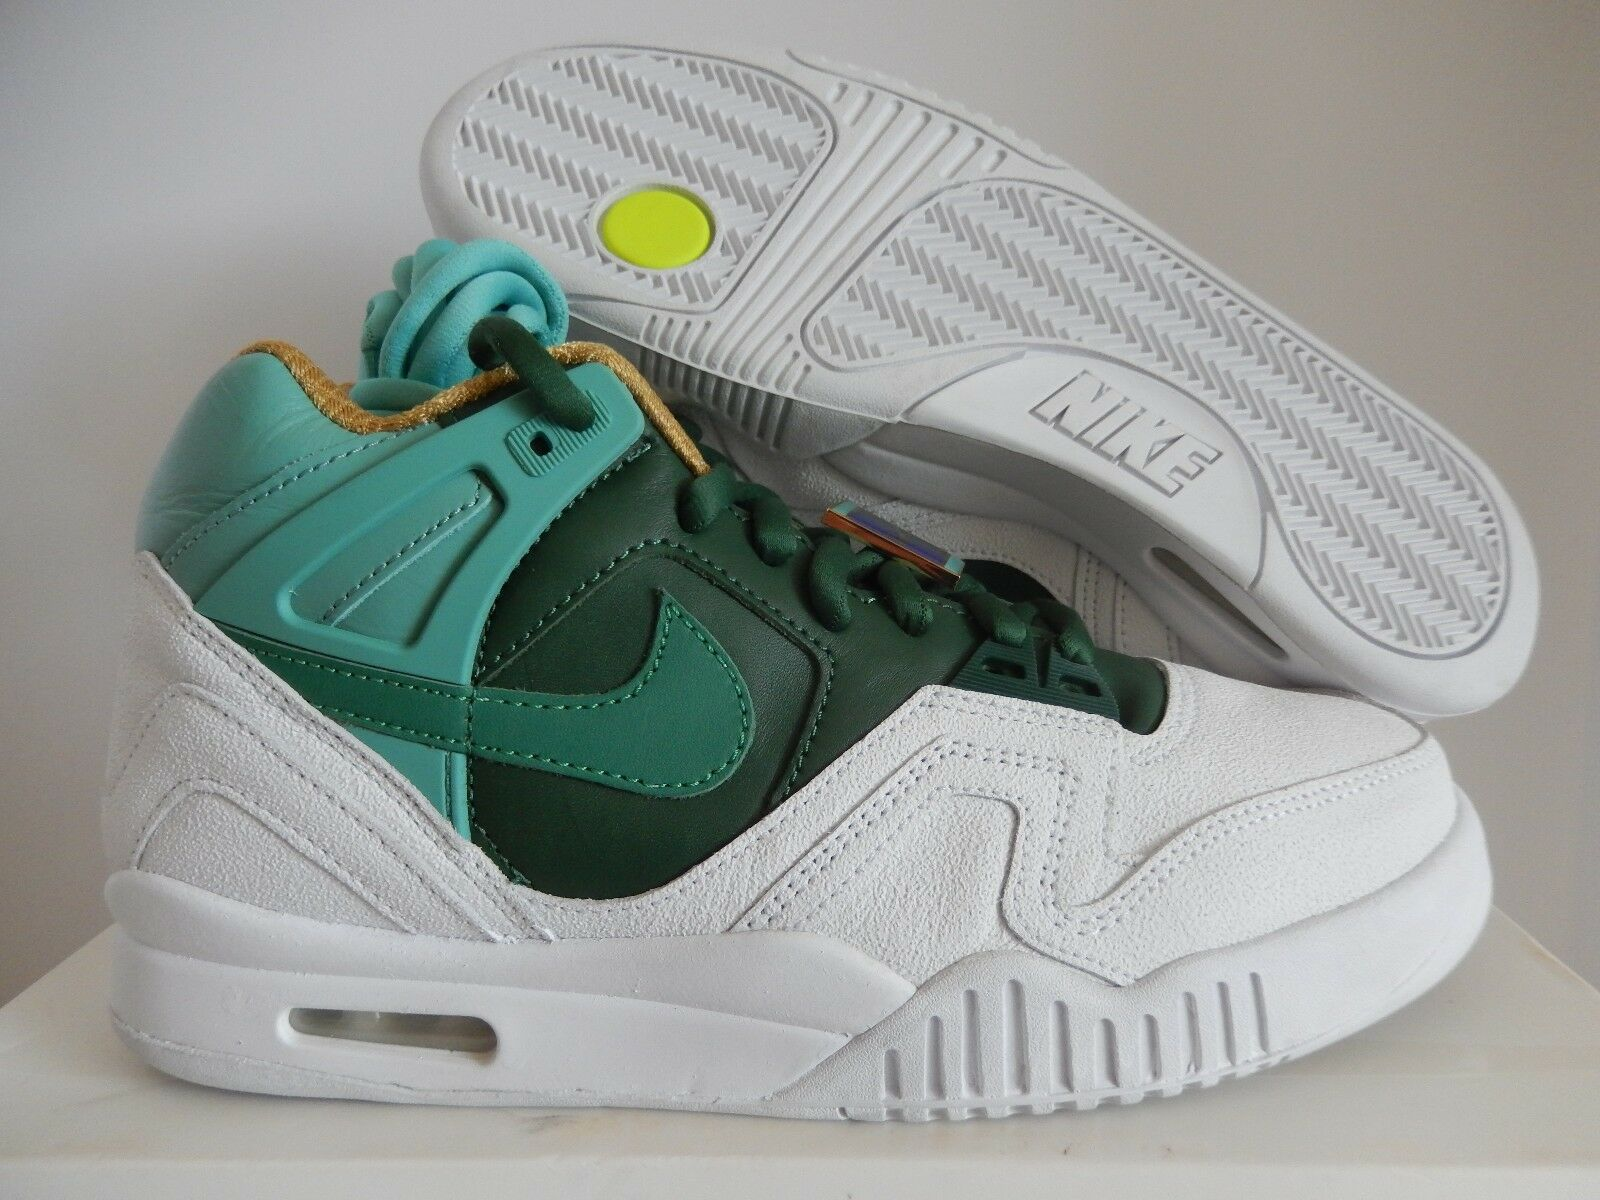 NIKE AIR TECH CHALLENGE II 2 SP TENNIS WHITE-JADE GLAZE-GREEN Price reduction The latest discount shoes for men and women